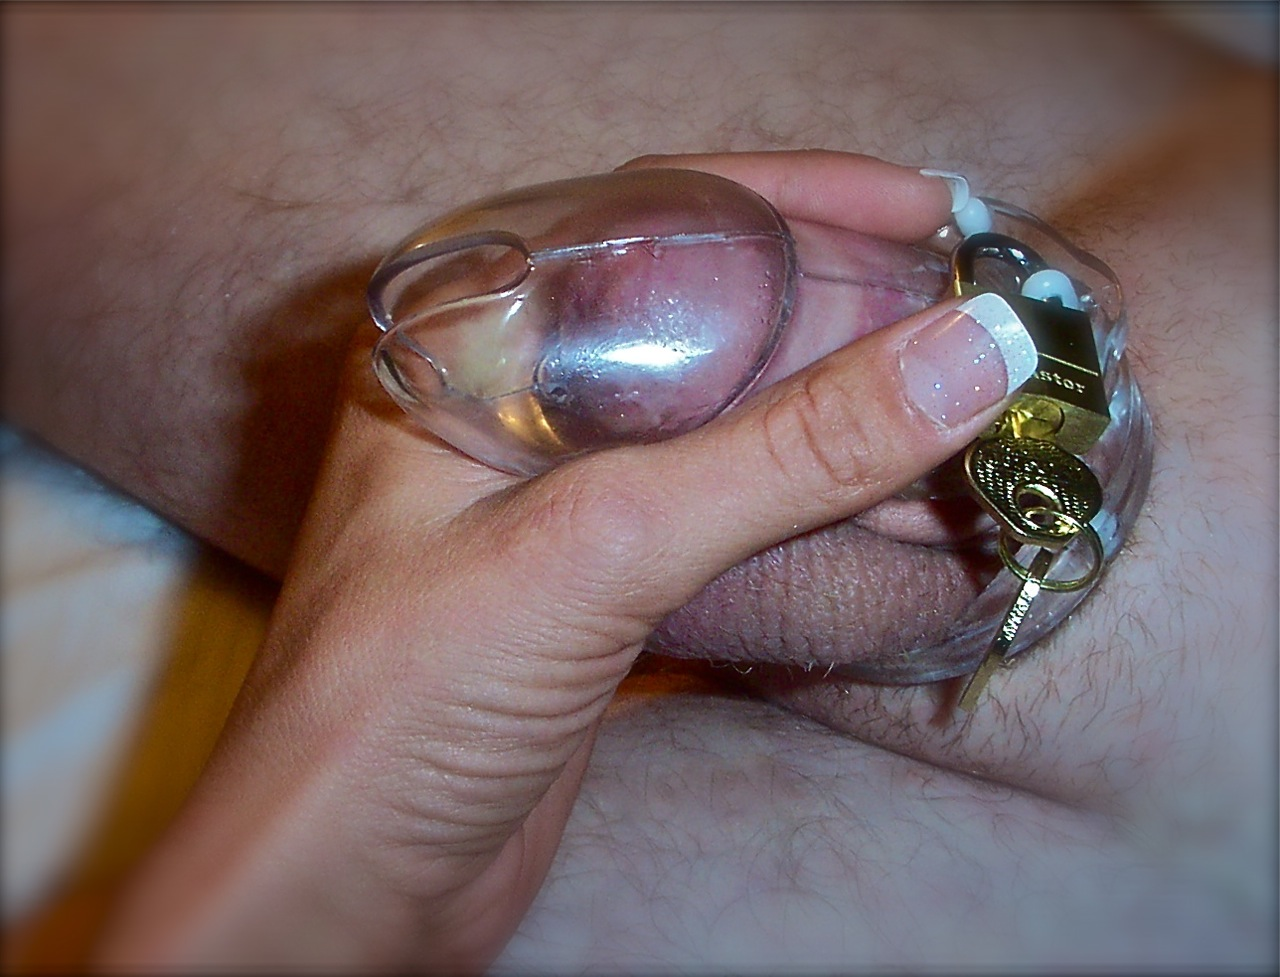 Chastity device.